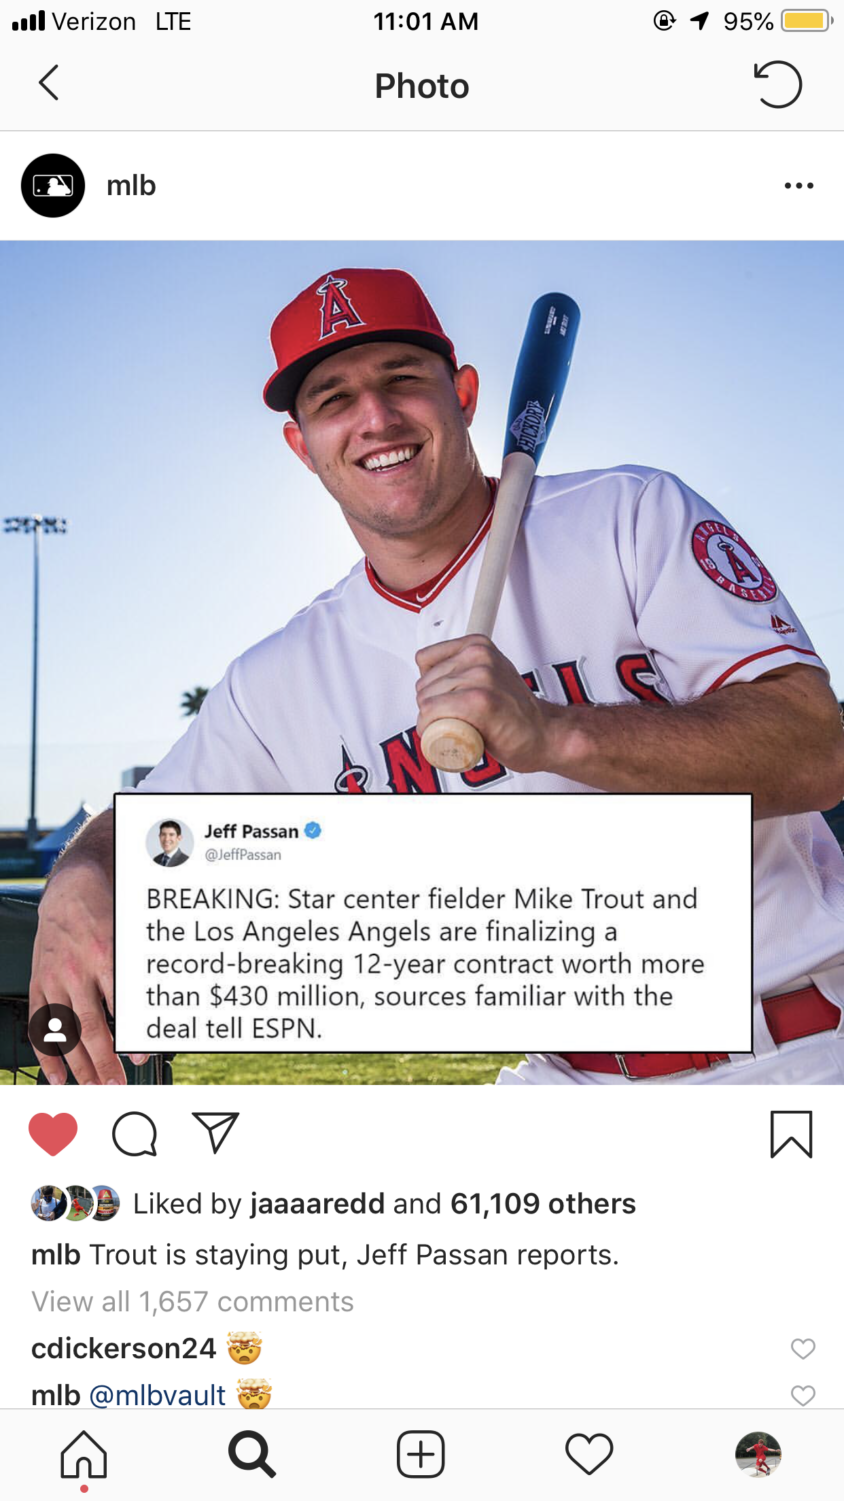 Mike Trout has reportedly agreed to a 12 430 million dollar extension with LA.